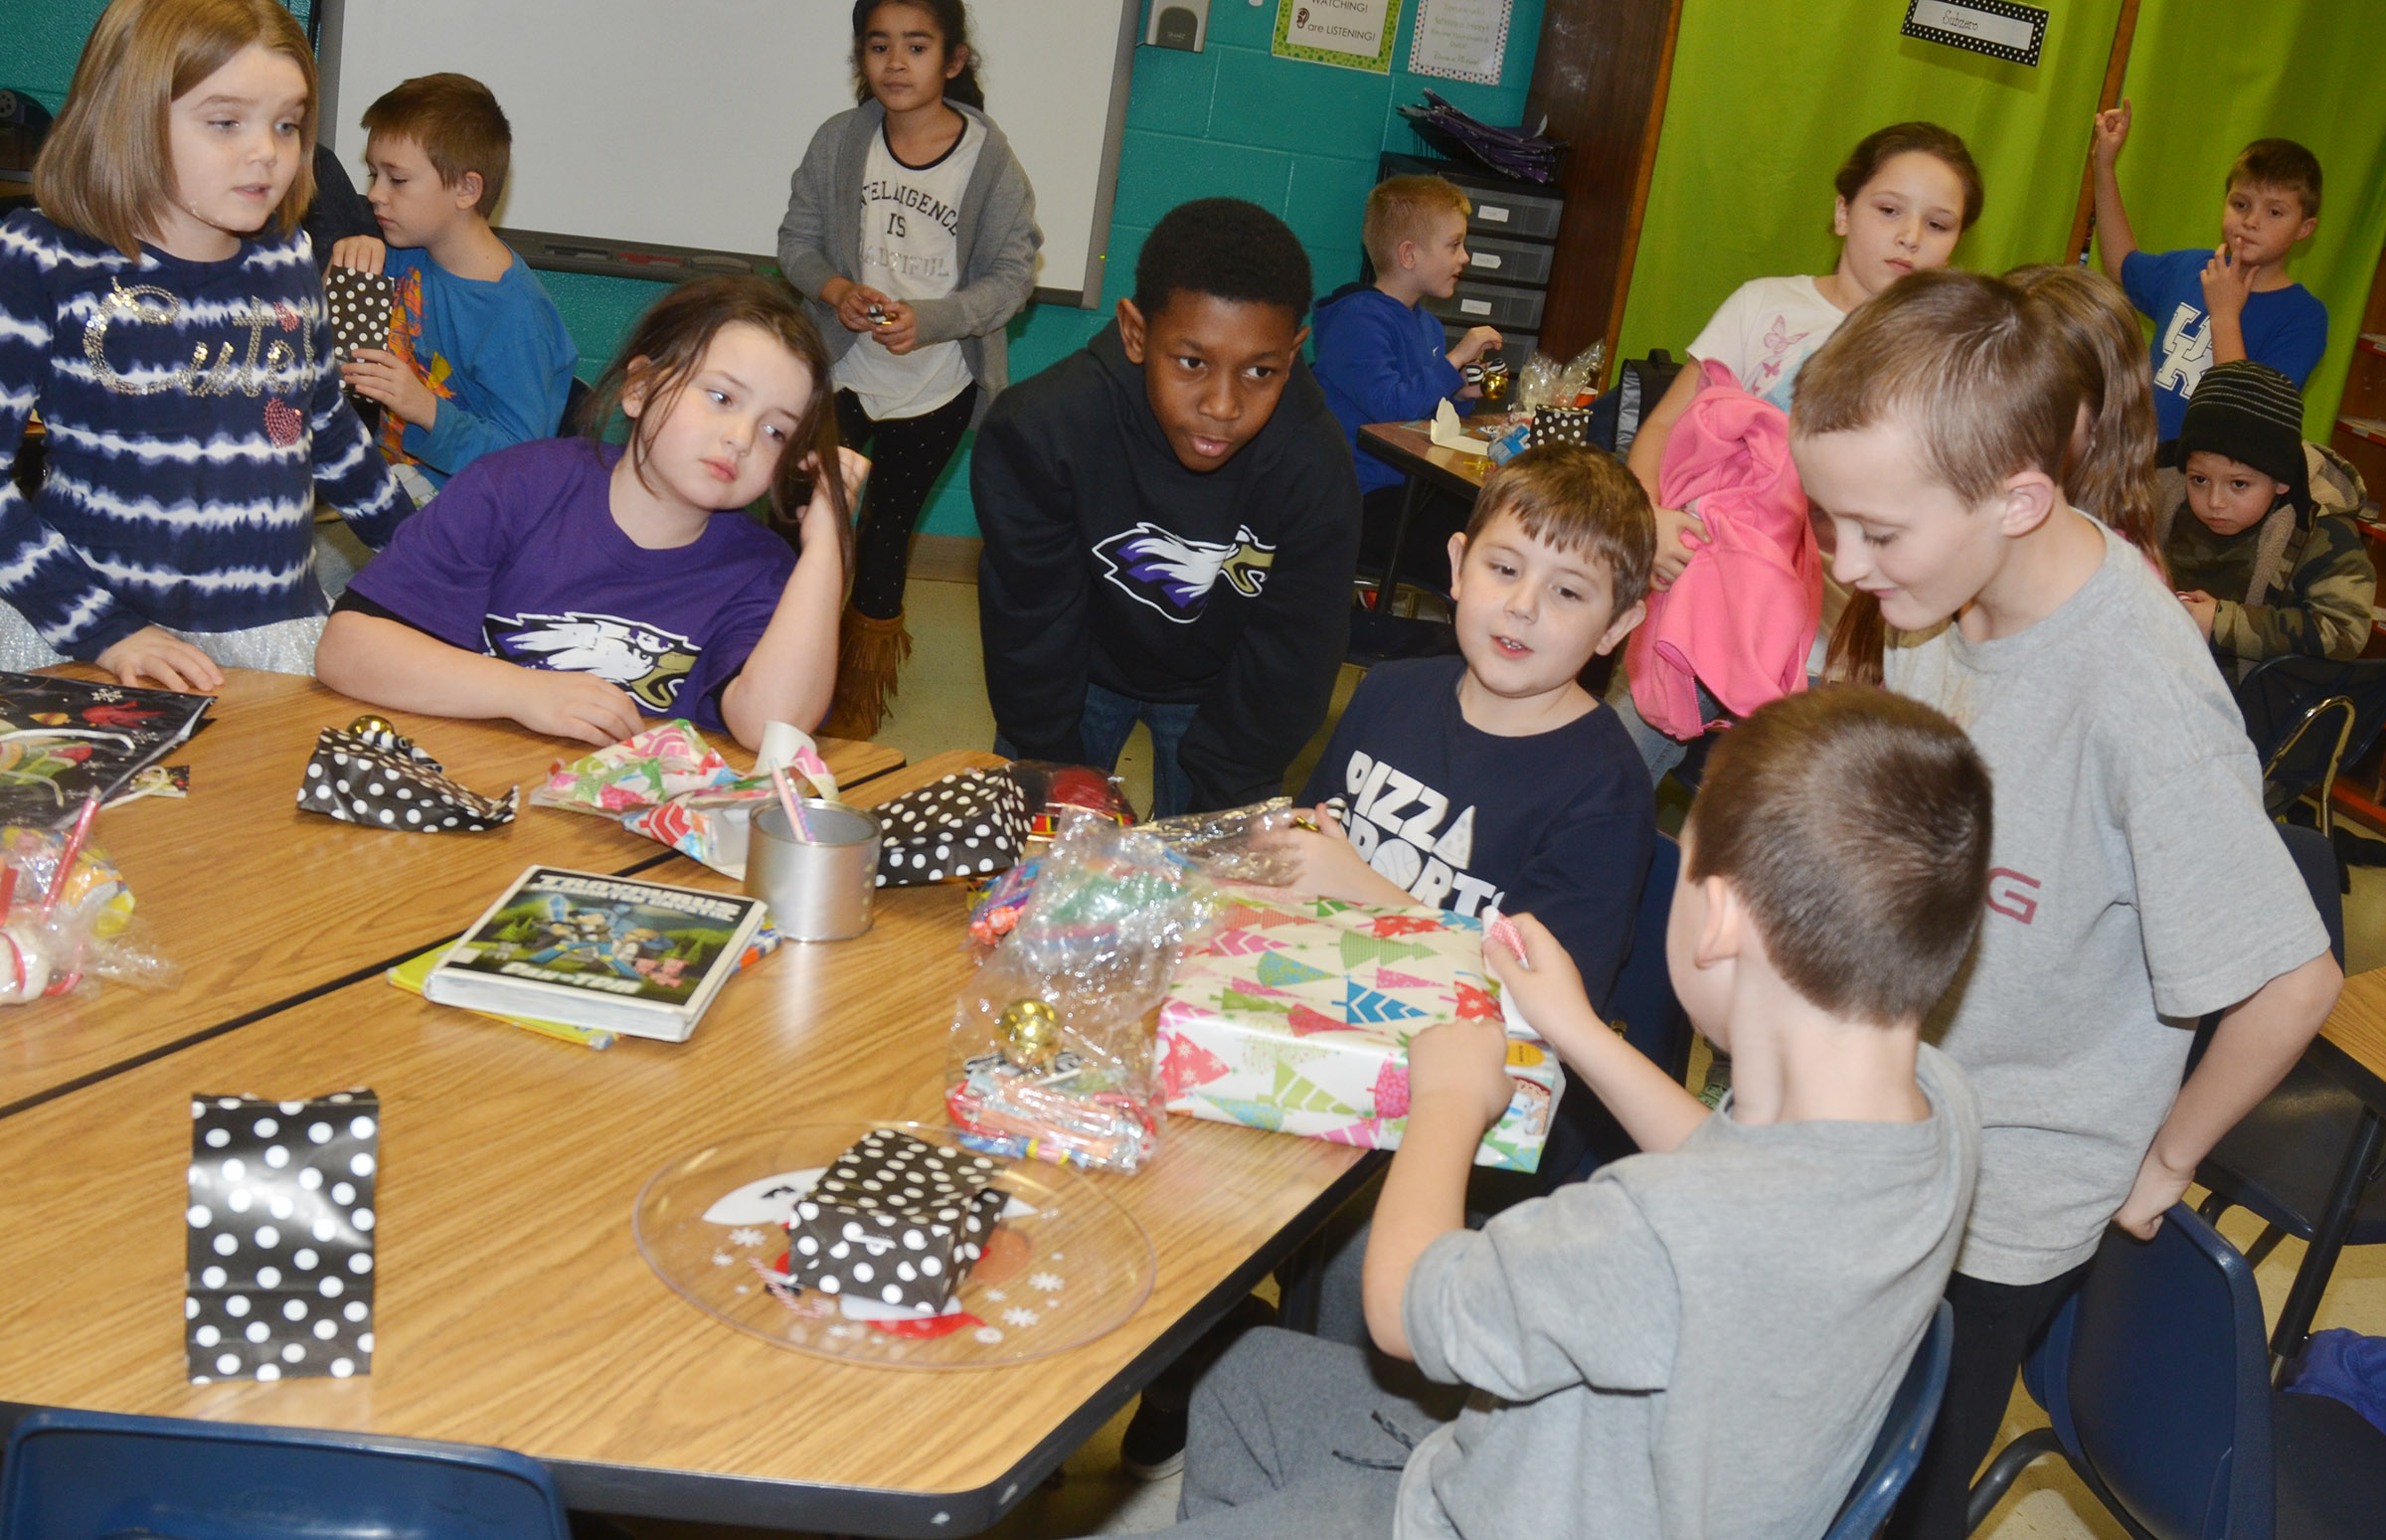 CES third-grader Ryan Tungate opens a gift that Santa brought for Hannah Jones's classroom.